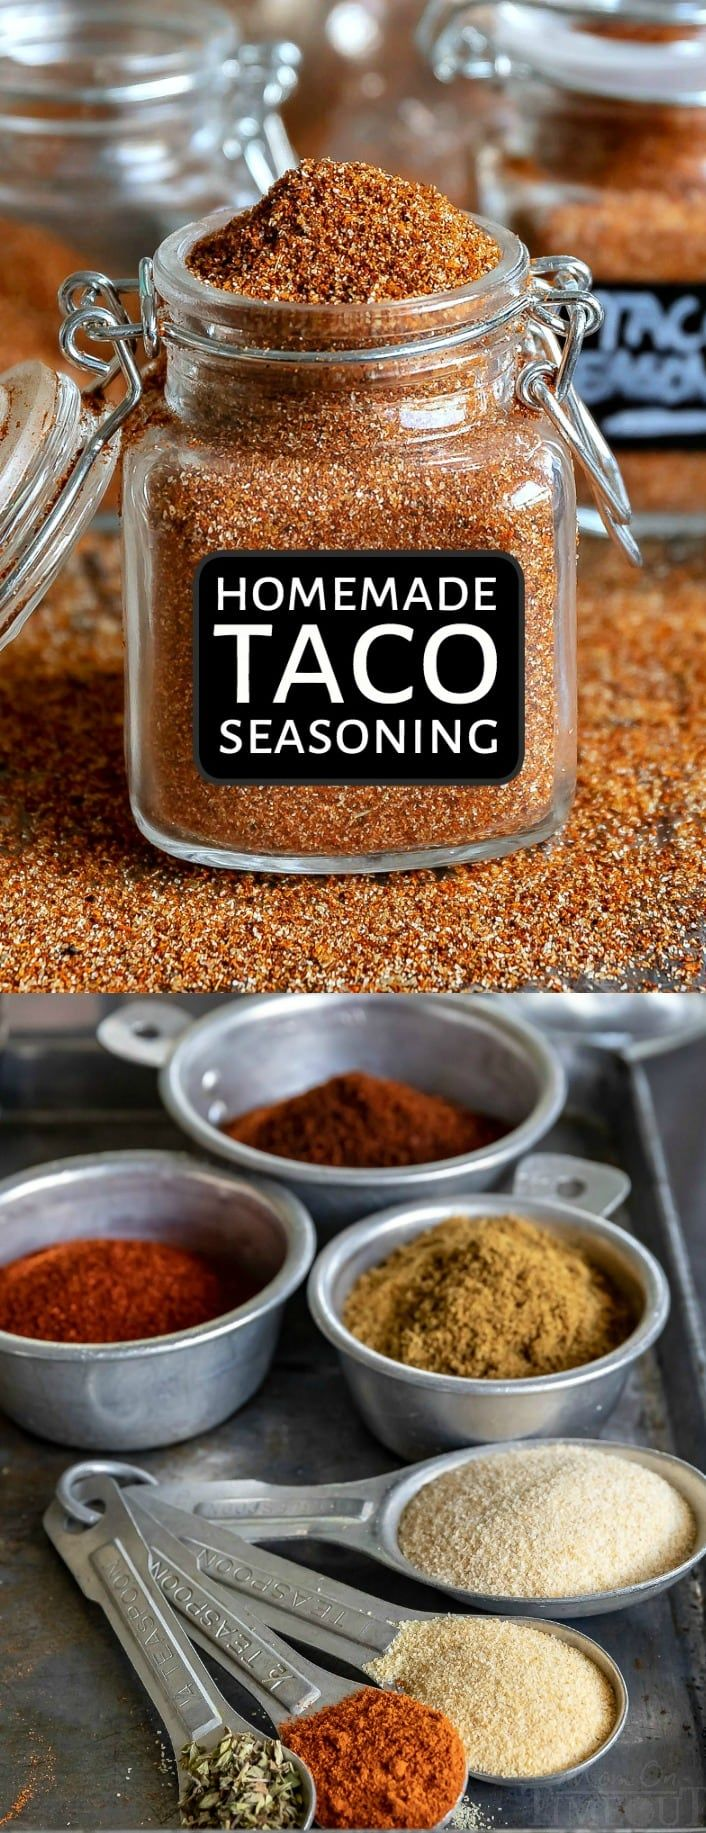 This easy homemade Taco Seasoning recipe is a pantry staple! It adds amazing flavor to beef, chicken, veggies and more! We love using it with enchiladas, tacos, burritos, and so much more! A simple blend of spices that you already have on hand makes this DIY taco seasoning a yummy alternative to store bought mixes. // Mom On Timeout #taco #tacotuesday #tacoseasoning #mexican #seasoning #mixes #diy #tacos #diytacoseasoning